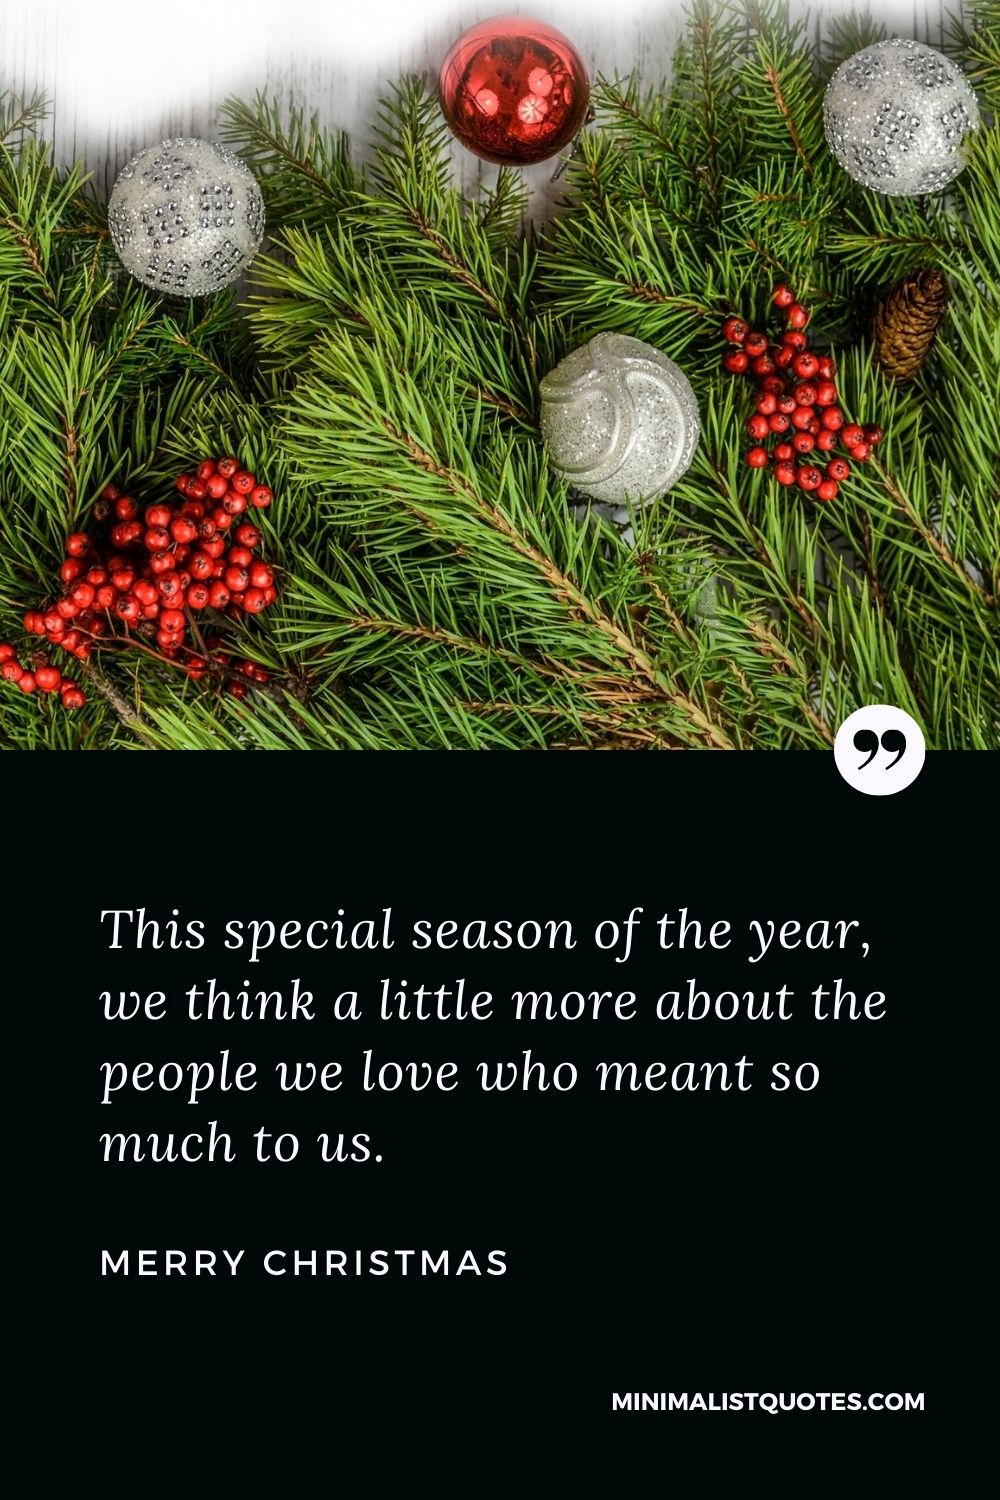 Merry Christmas Wish - This special season of the year, we think a little more about the people we love who meant so much to us.